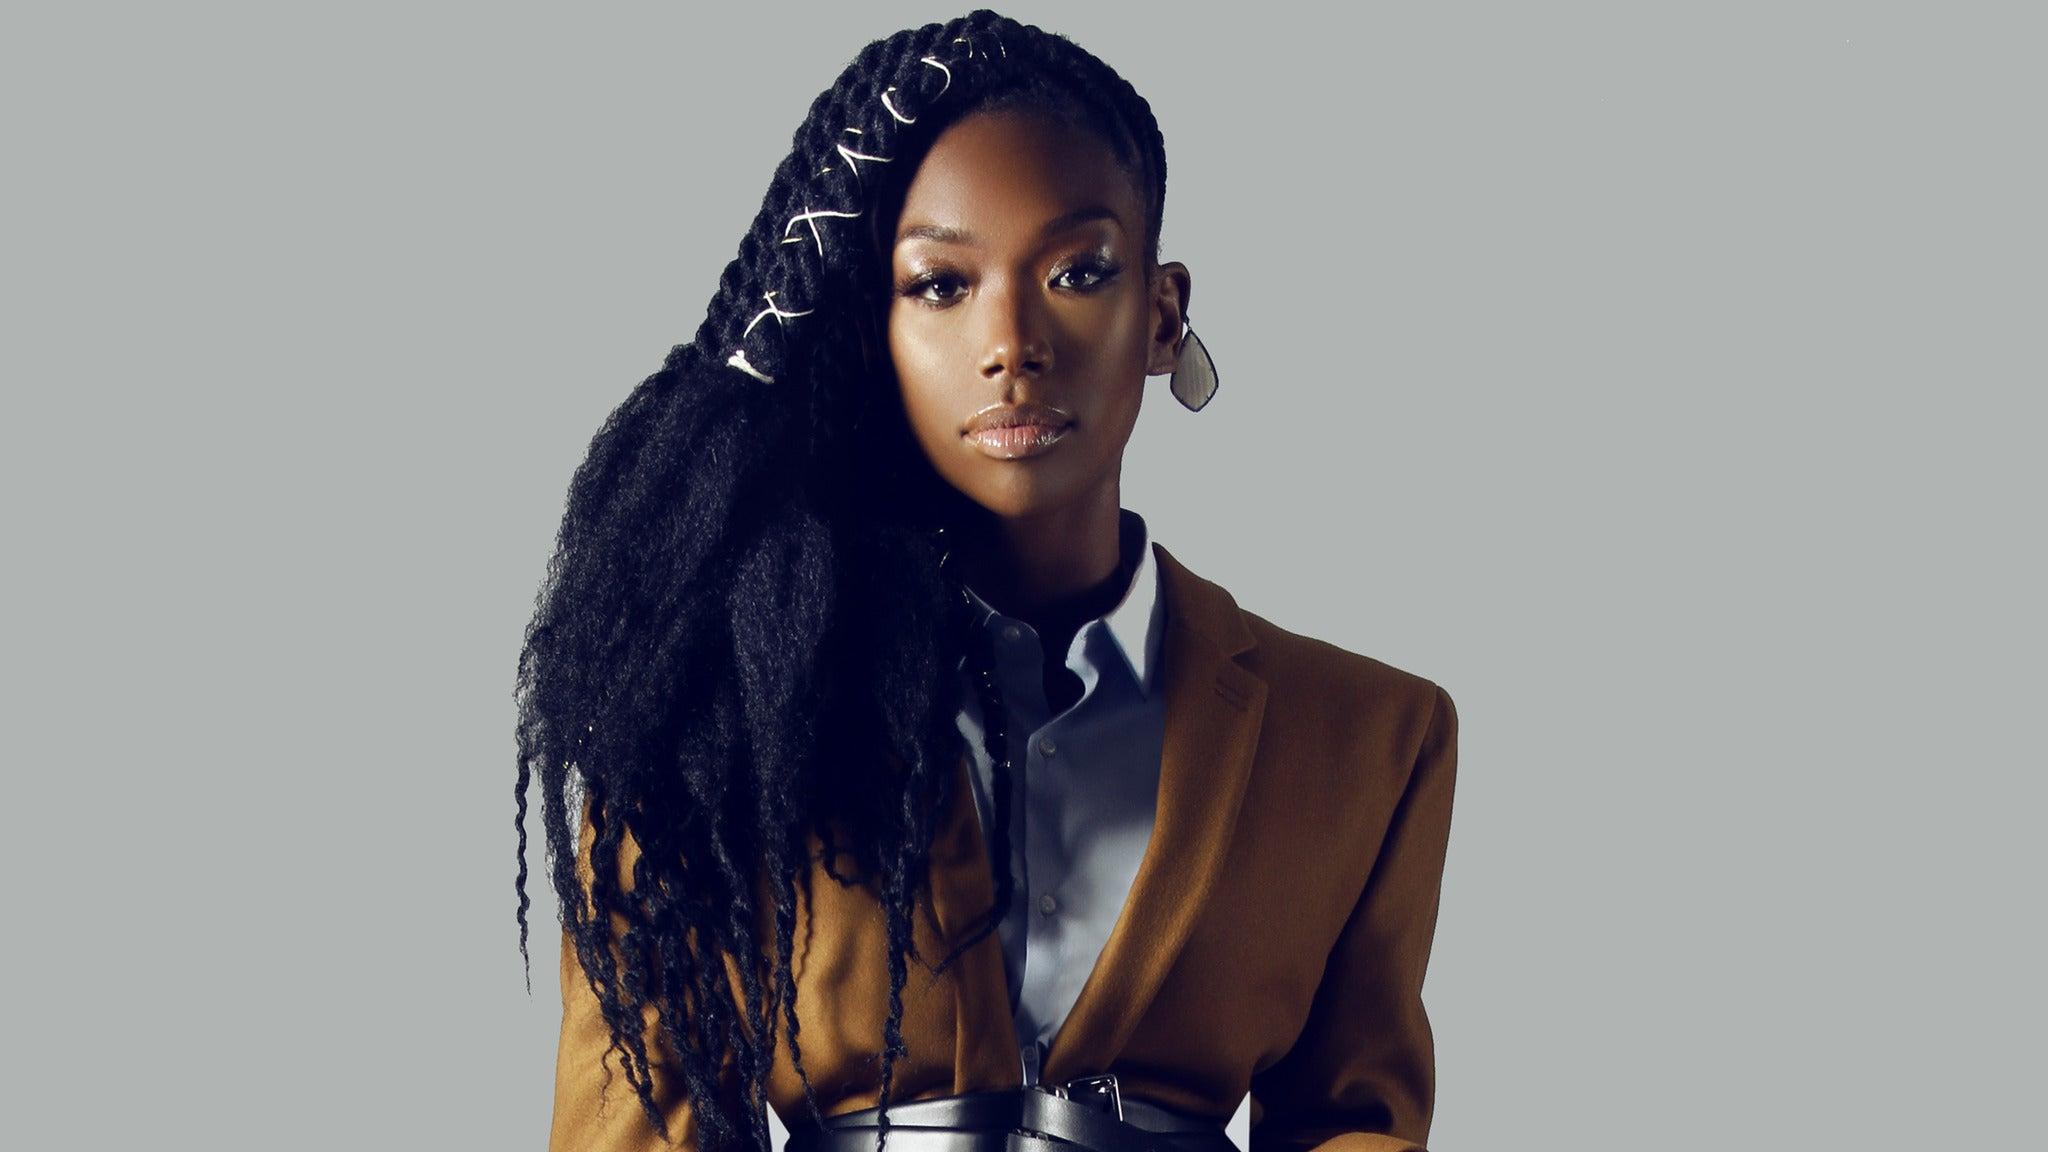 Brandy at The Grand Theater at Foxwoods Resort Casino